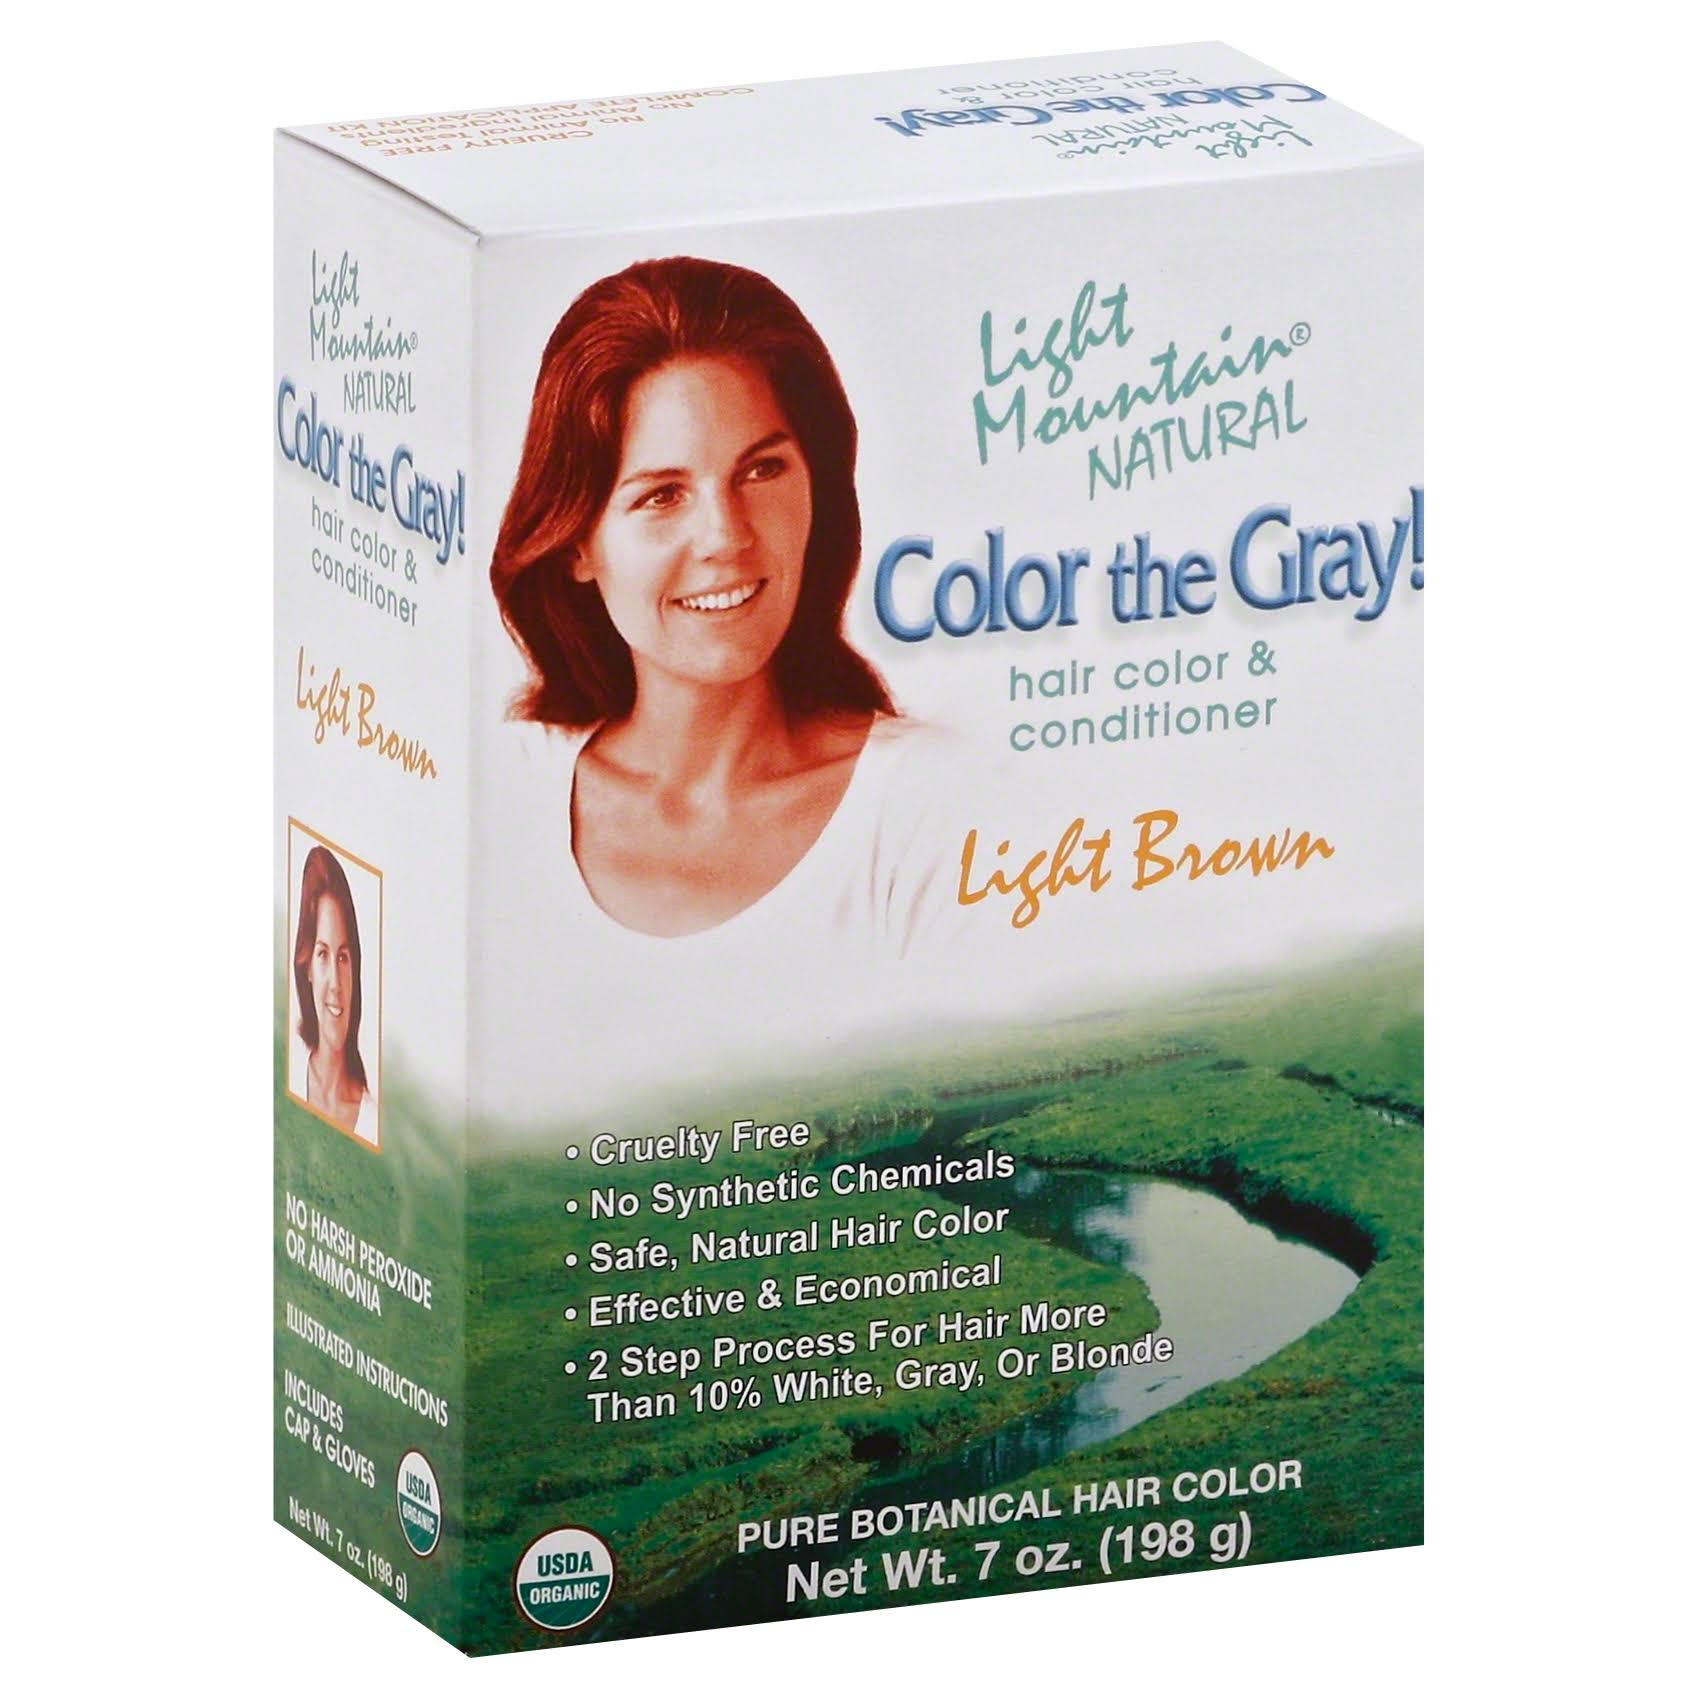 Light Mountain Natural Color The Gray! Hair Color & Conditioner - Light Brown